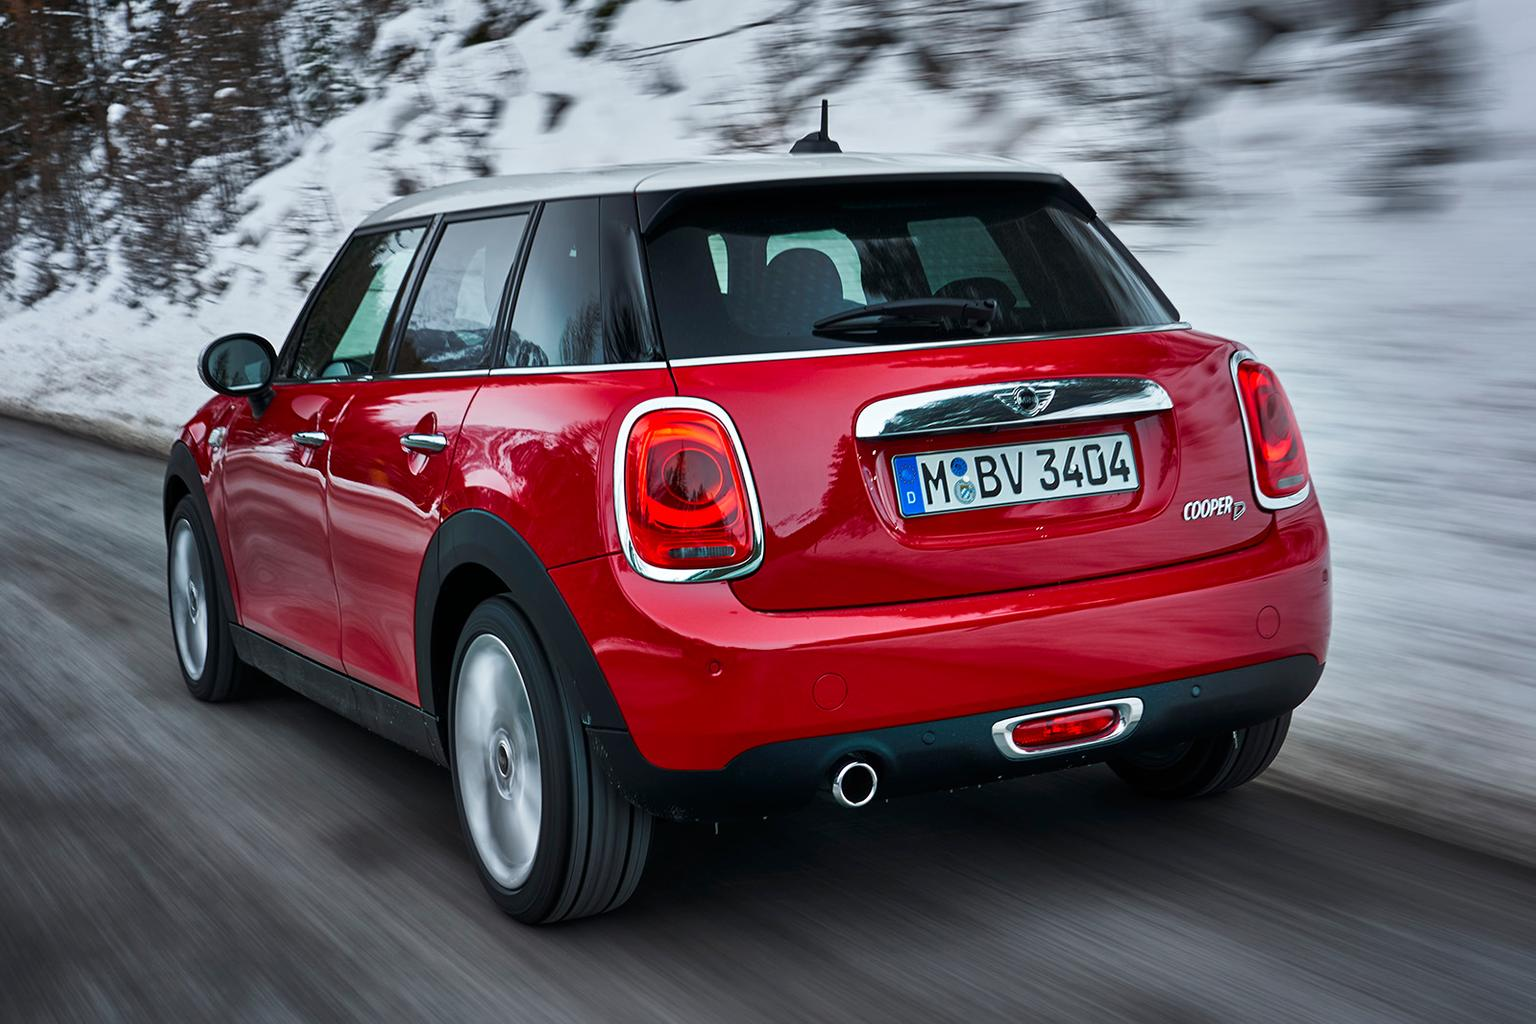 2018 Mini Hatch 5dr DCT review - price, specs and release date